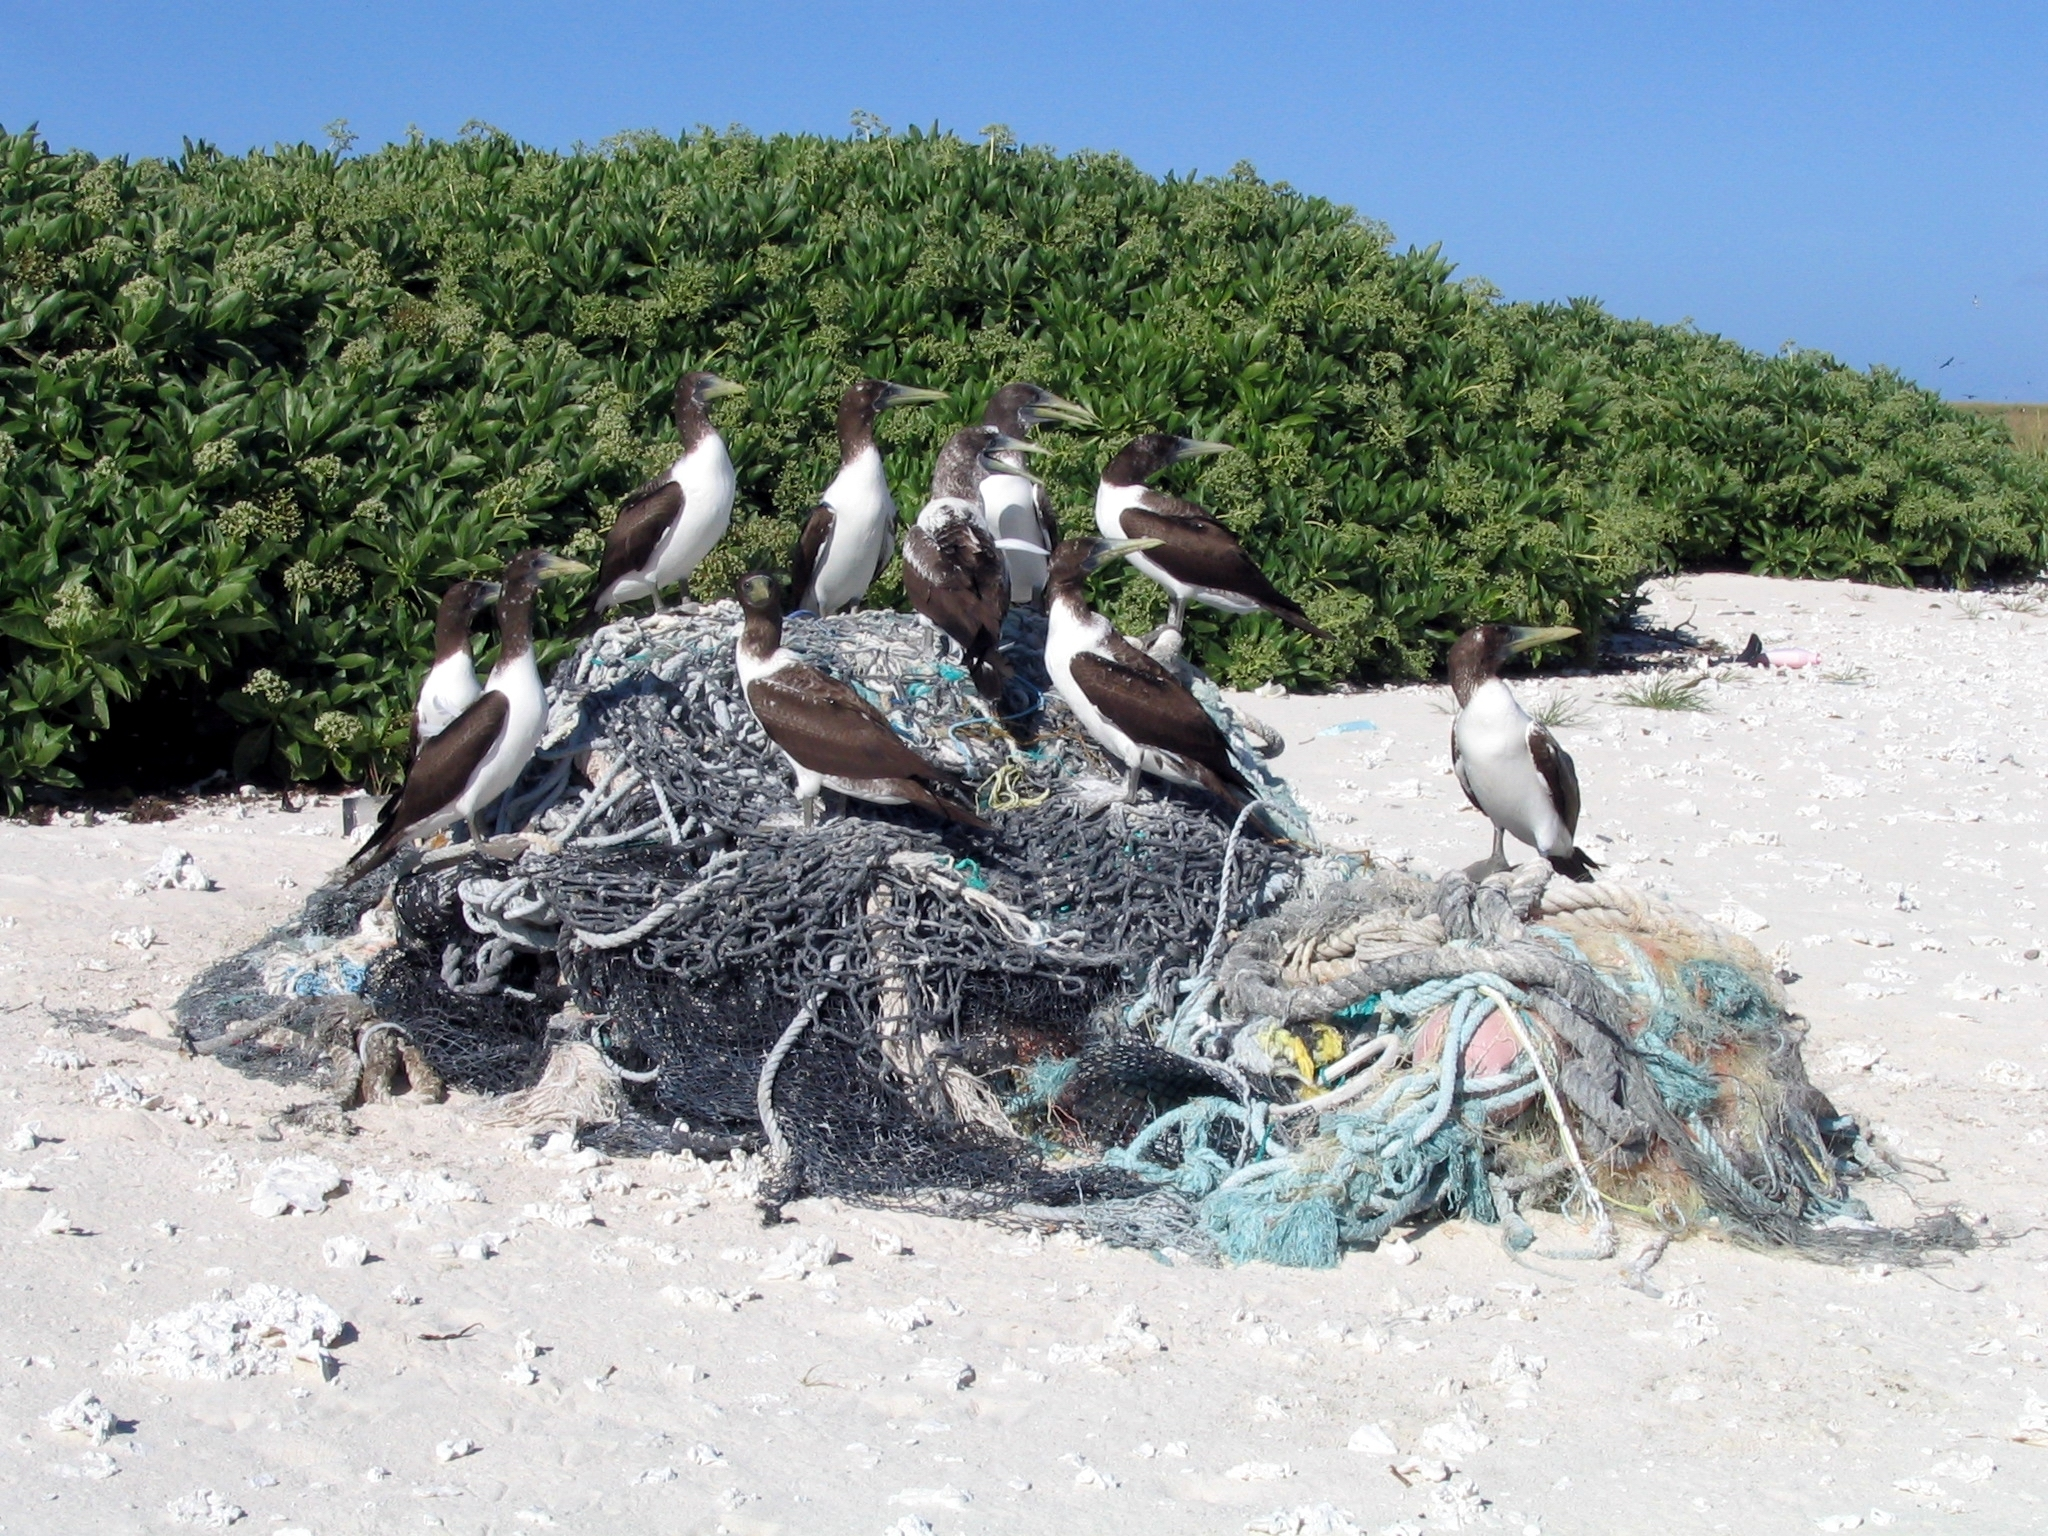 http://upload.wikimedia.org/wikipedia/commons/7/79/Kure_Marine_Debris.jpg